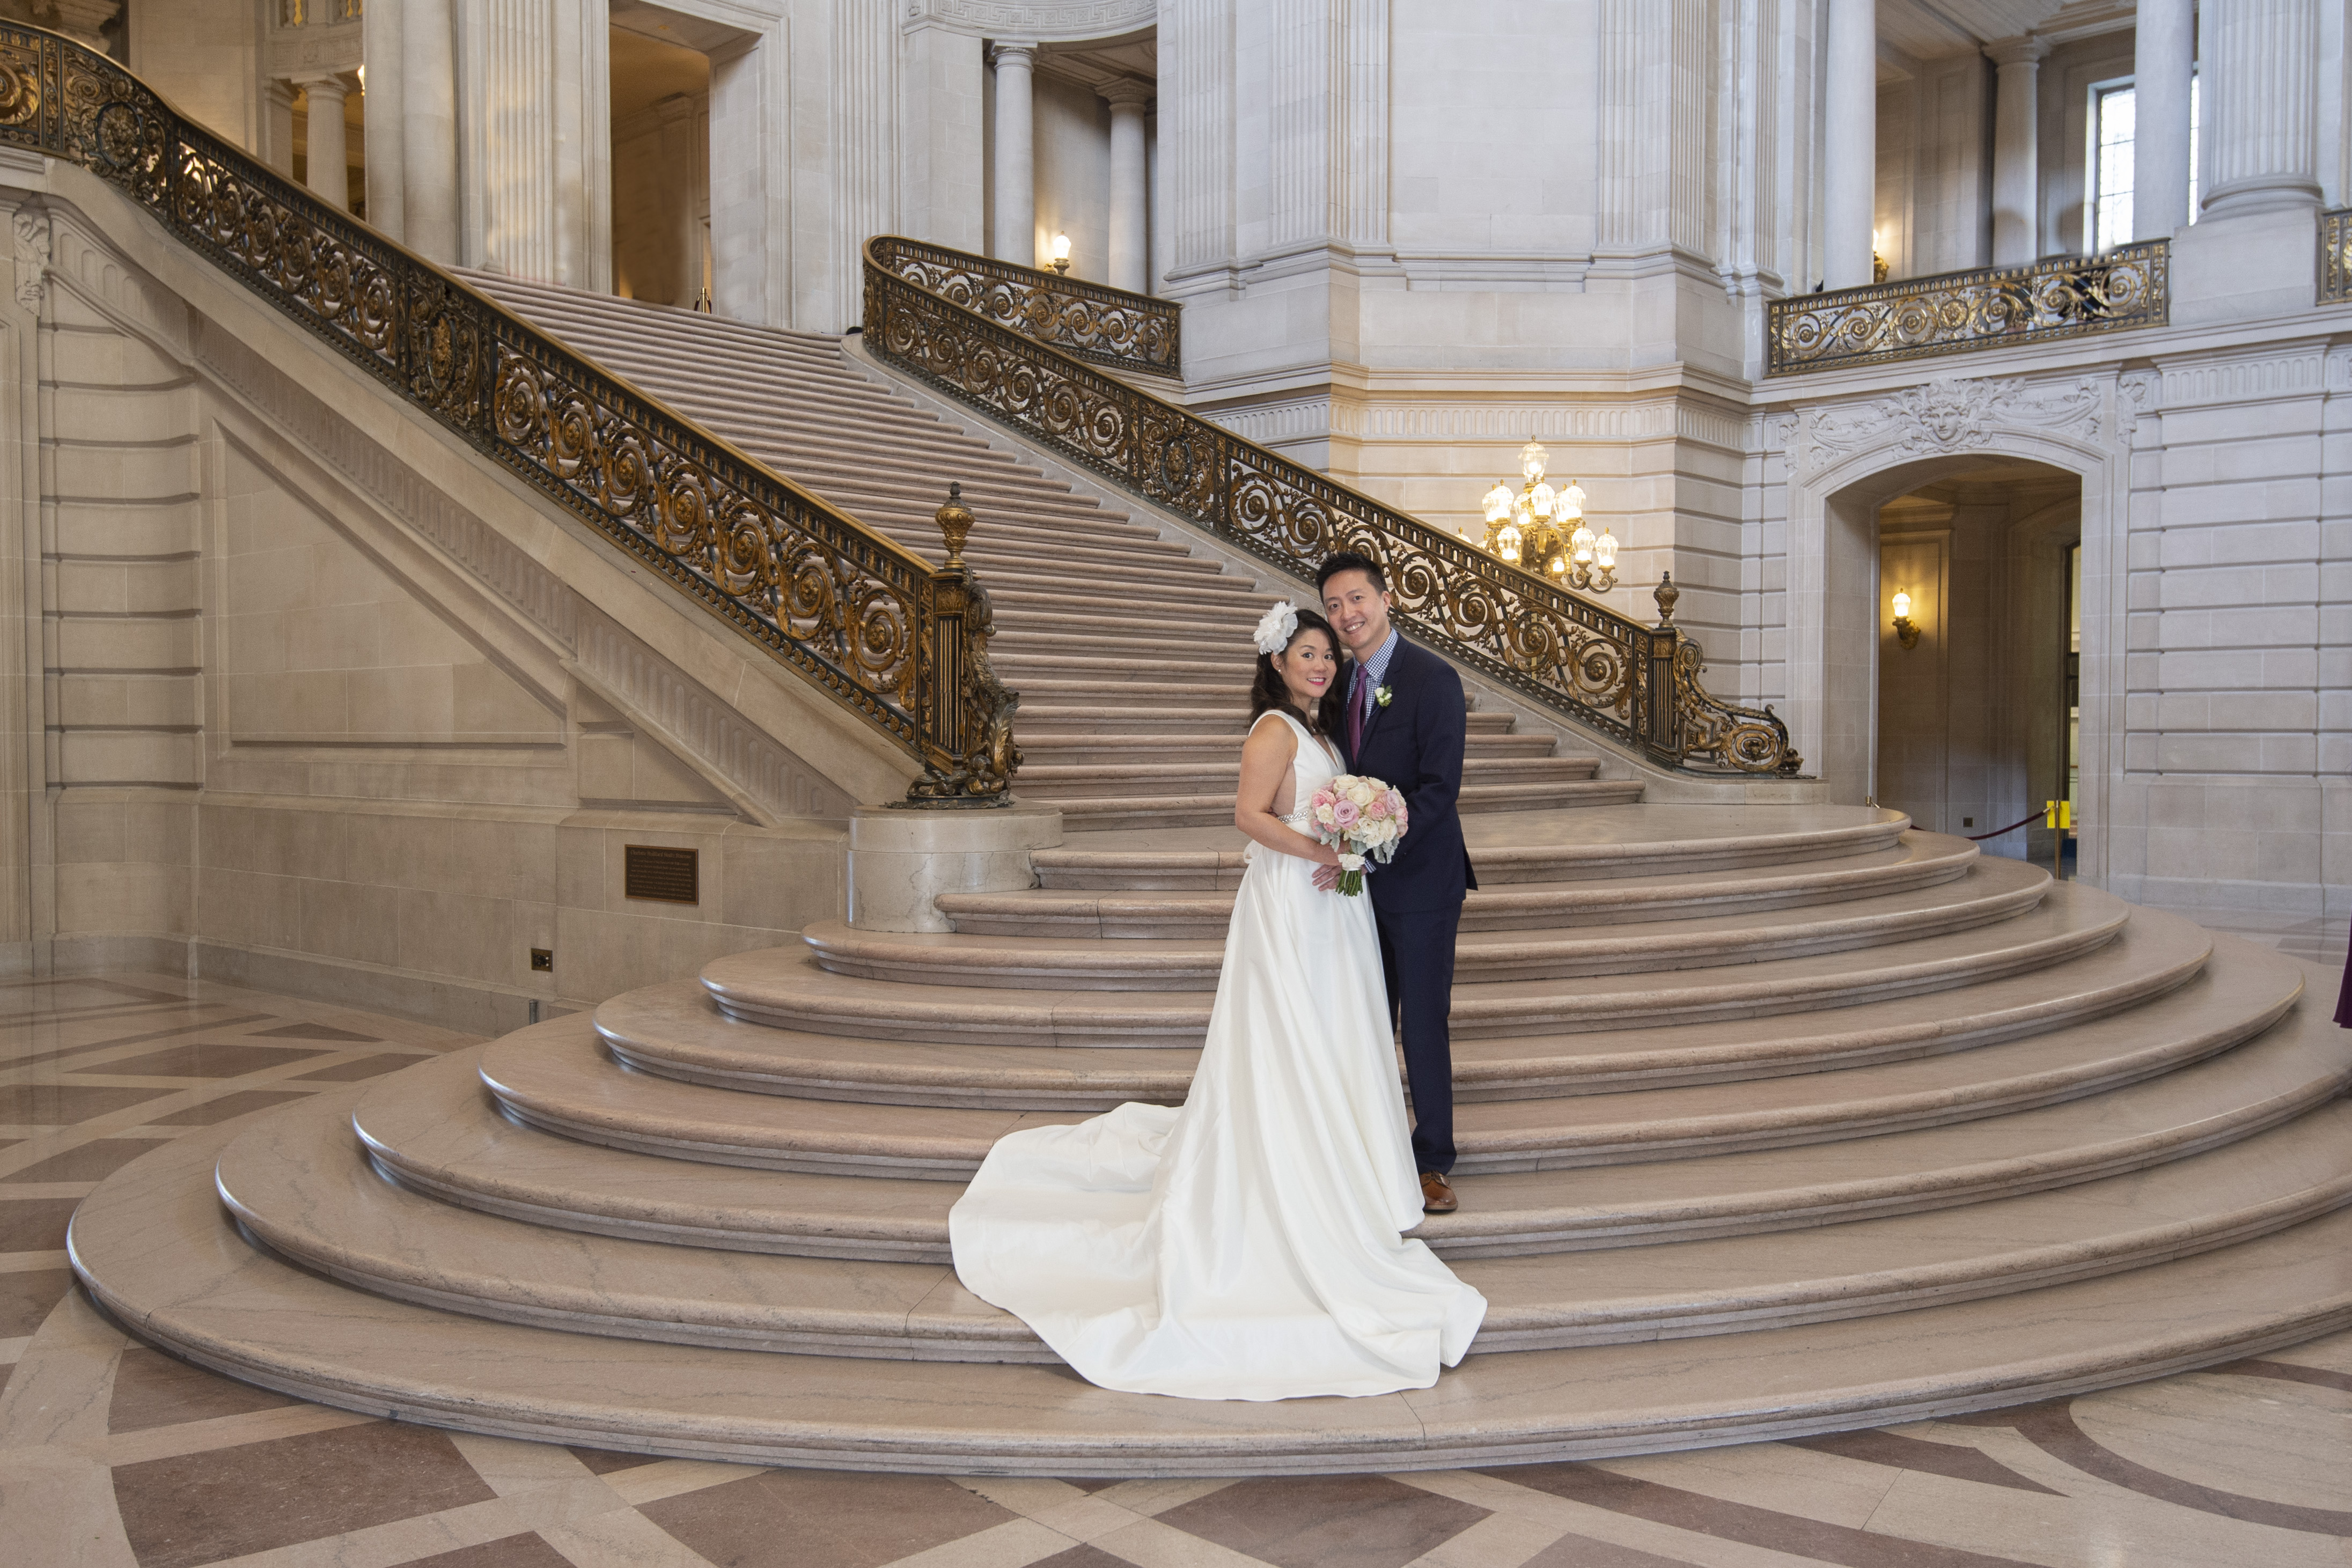 The Grand Staircase at SF City Hall